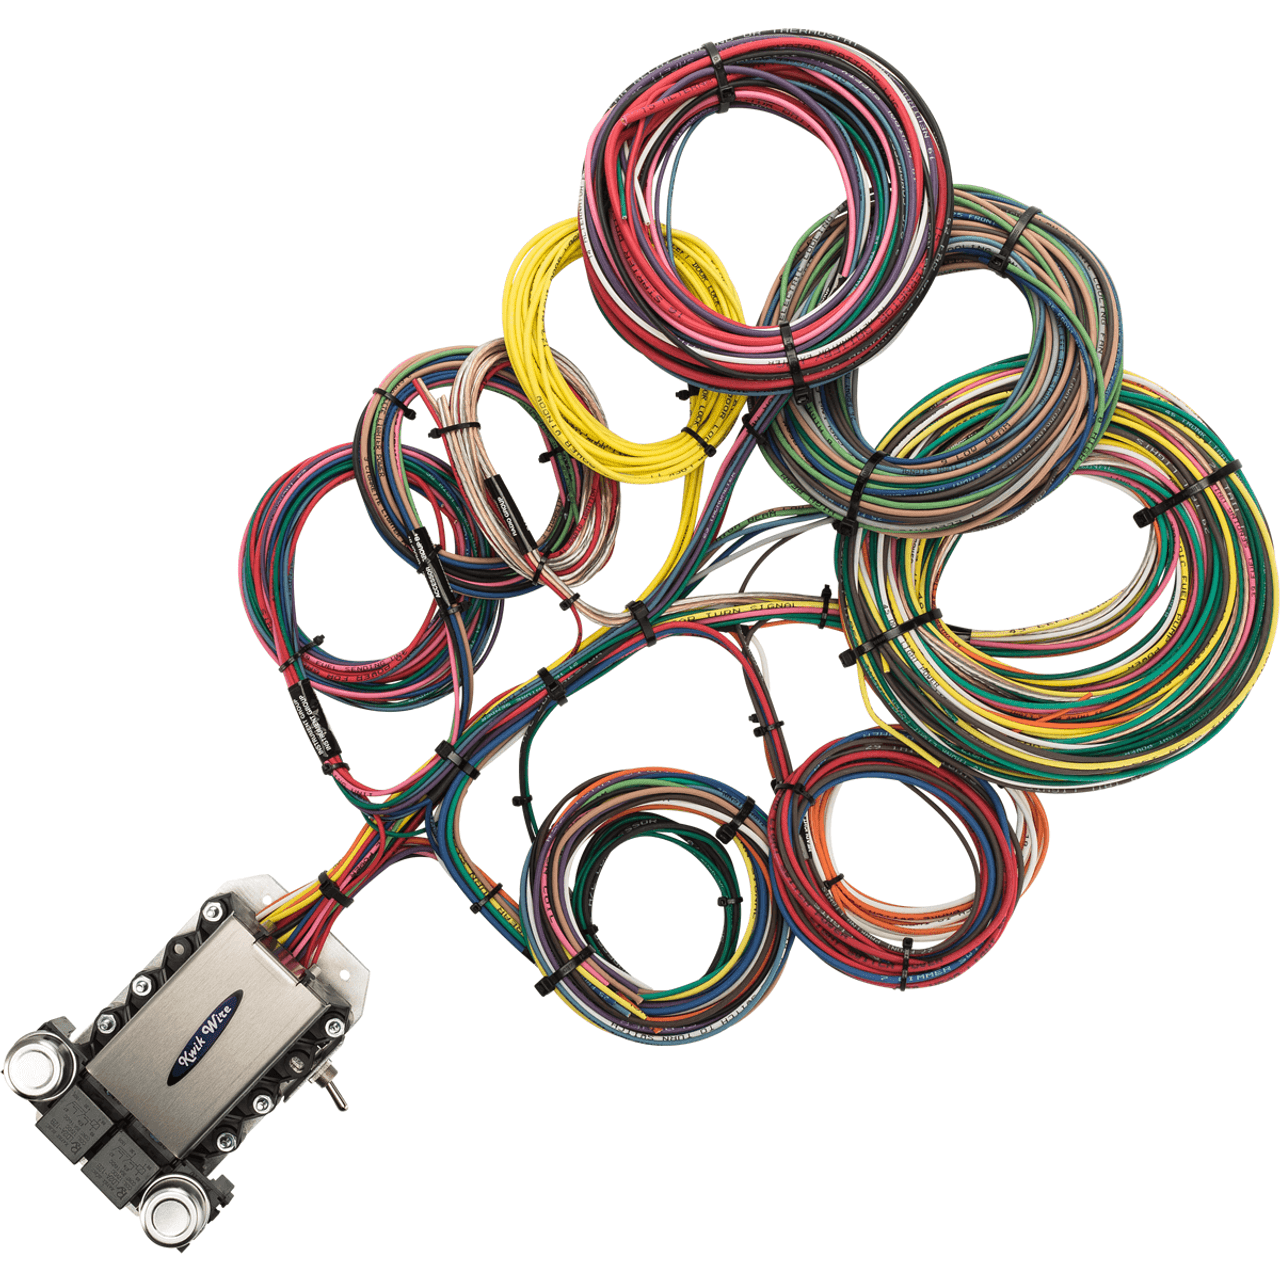 Universal Wiring Harness 20 Circuit Kit Diagrams Ford Wire Kwikwire Com Electrify Your Ride Custom Automotive Kits